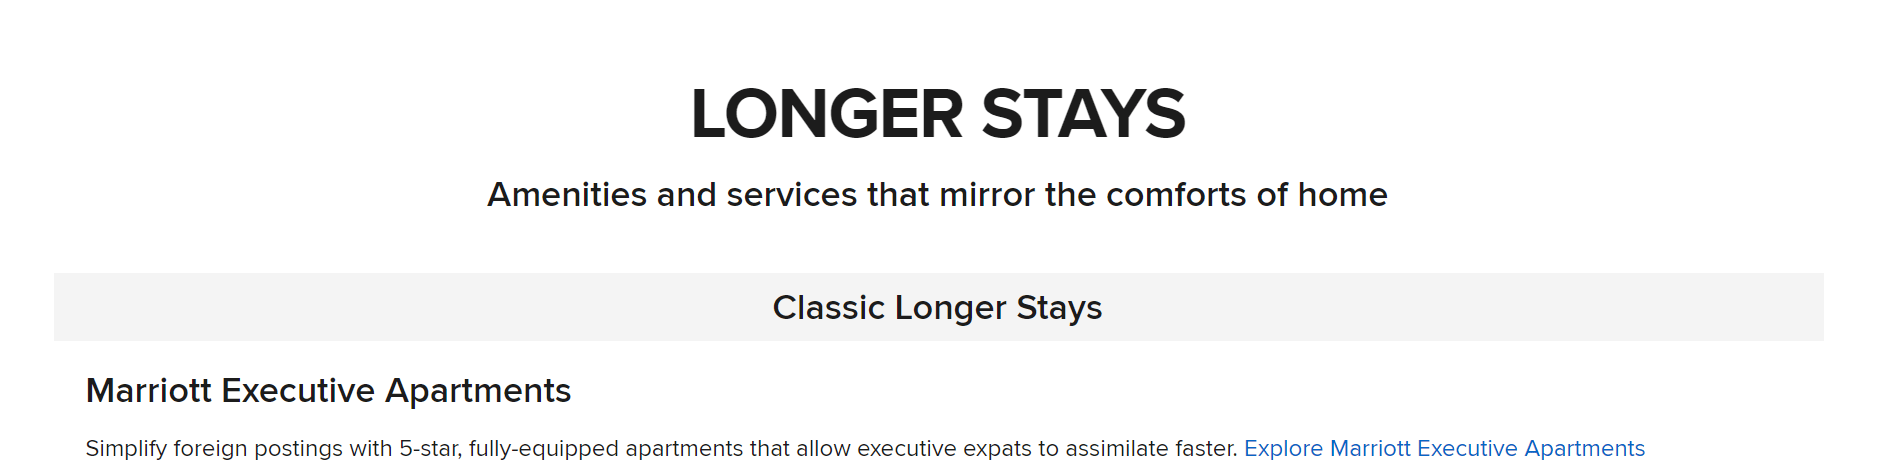 longer stay.PNG